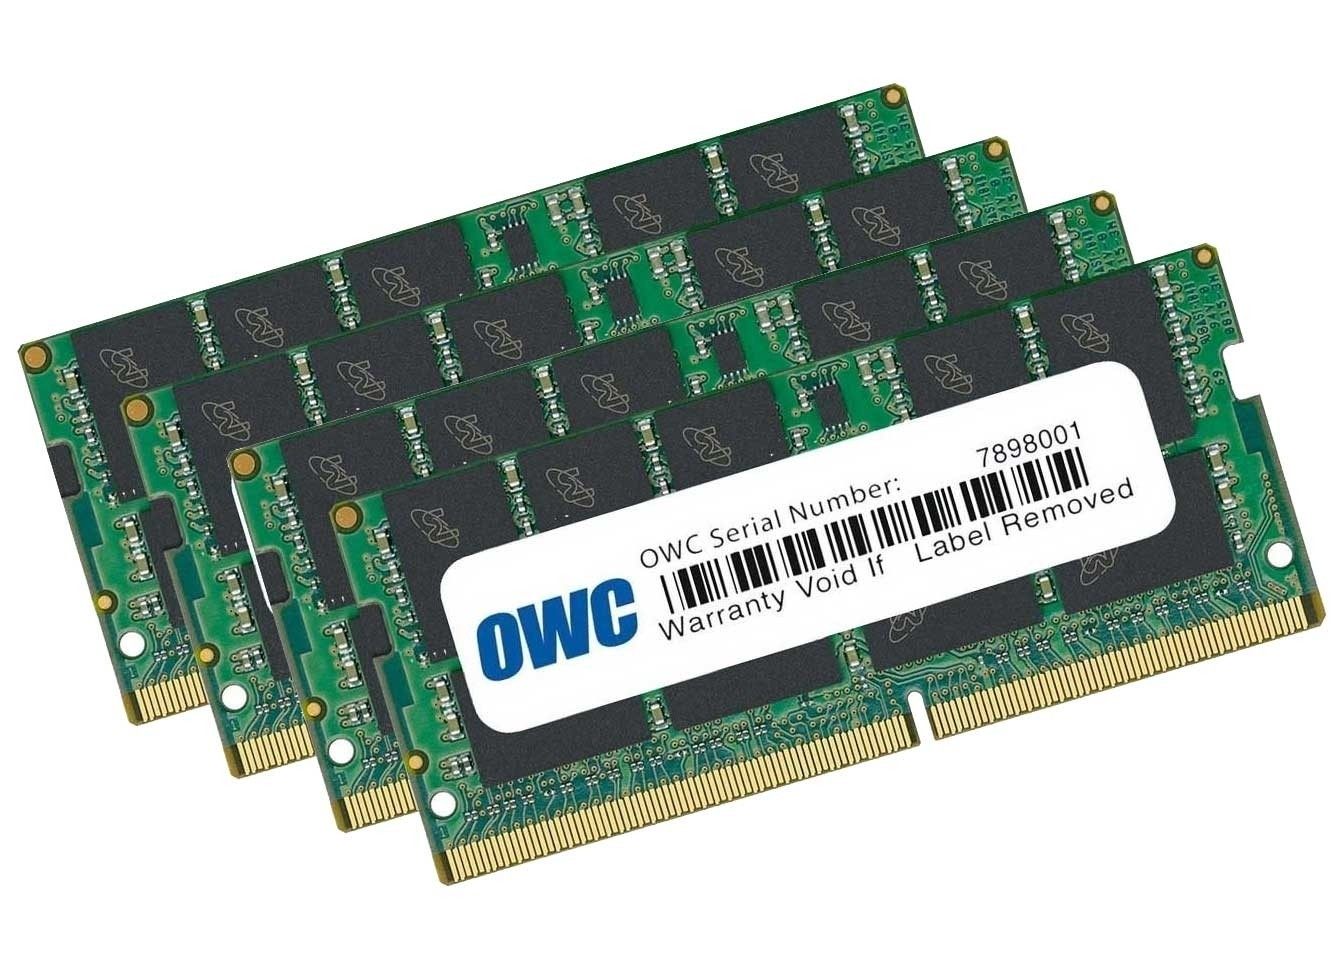 128.0GB (4 x 32GB) 2666MHz DDR4 PC4-21300 SO-DIMM 260 Pin OWC Memory Upgrade Kit, OWC2666DR4S128S